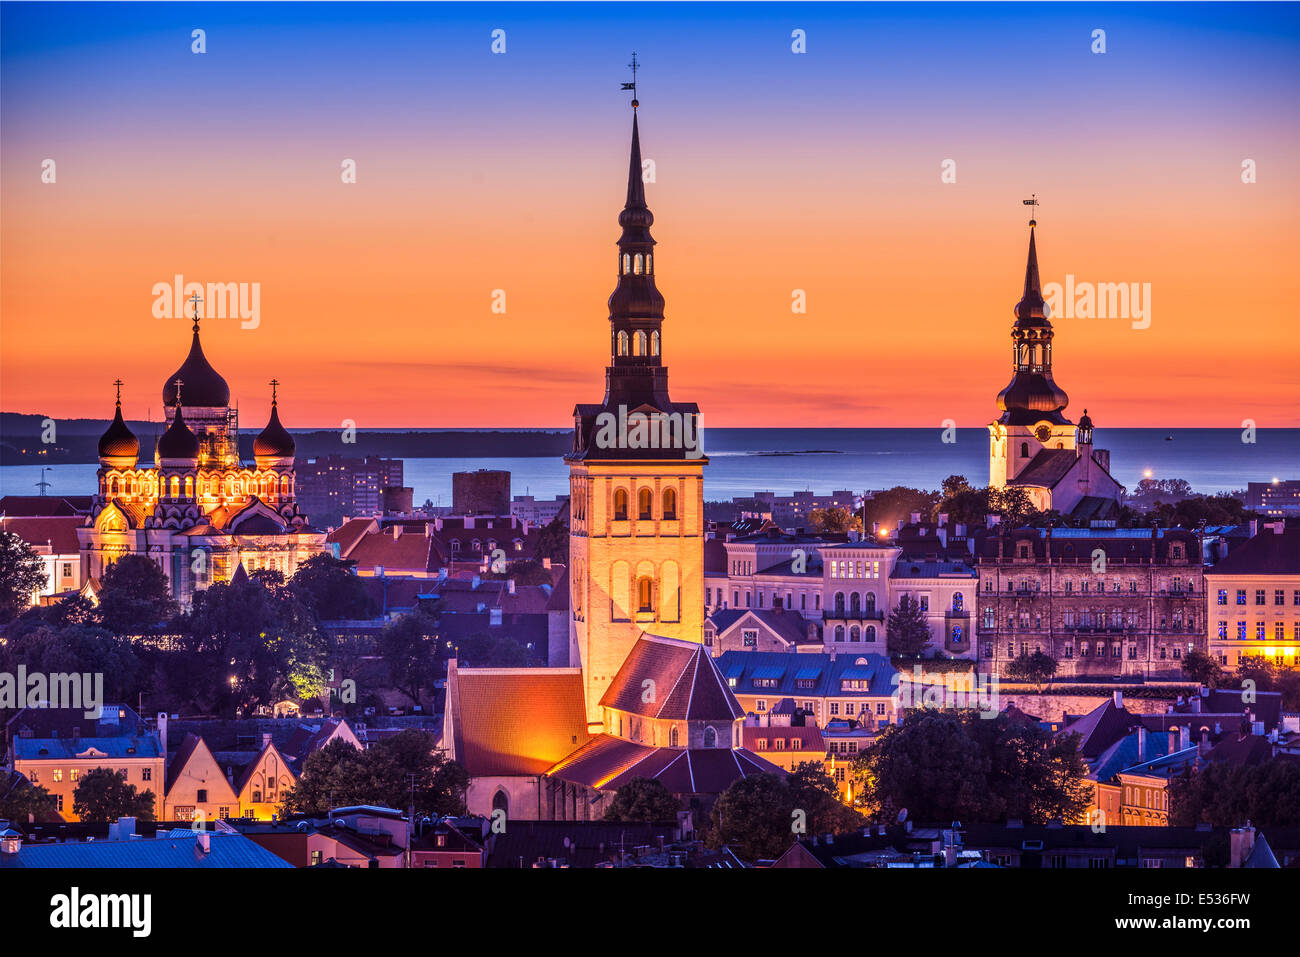 Tallinn, Estonia at sunset. - Stock Image